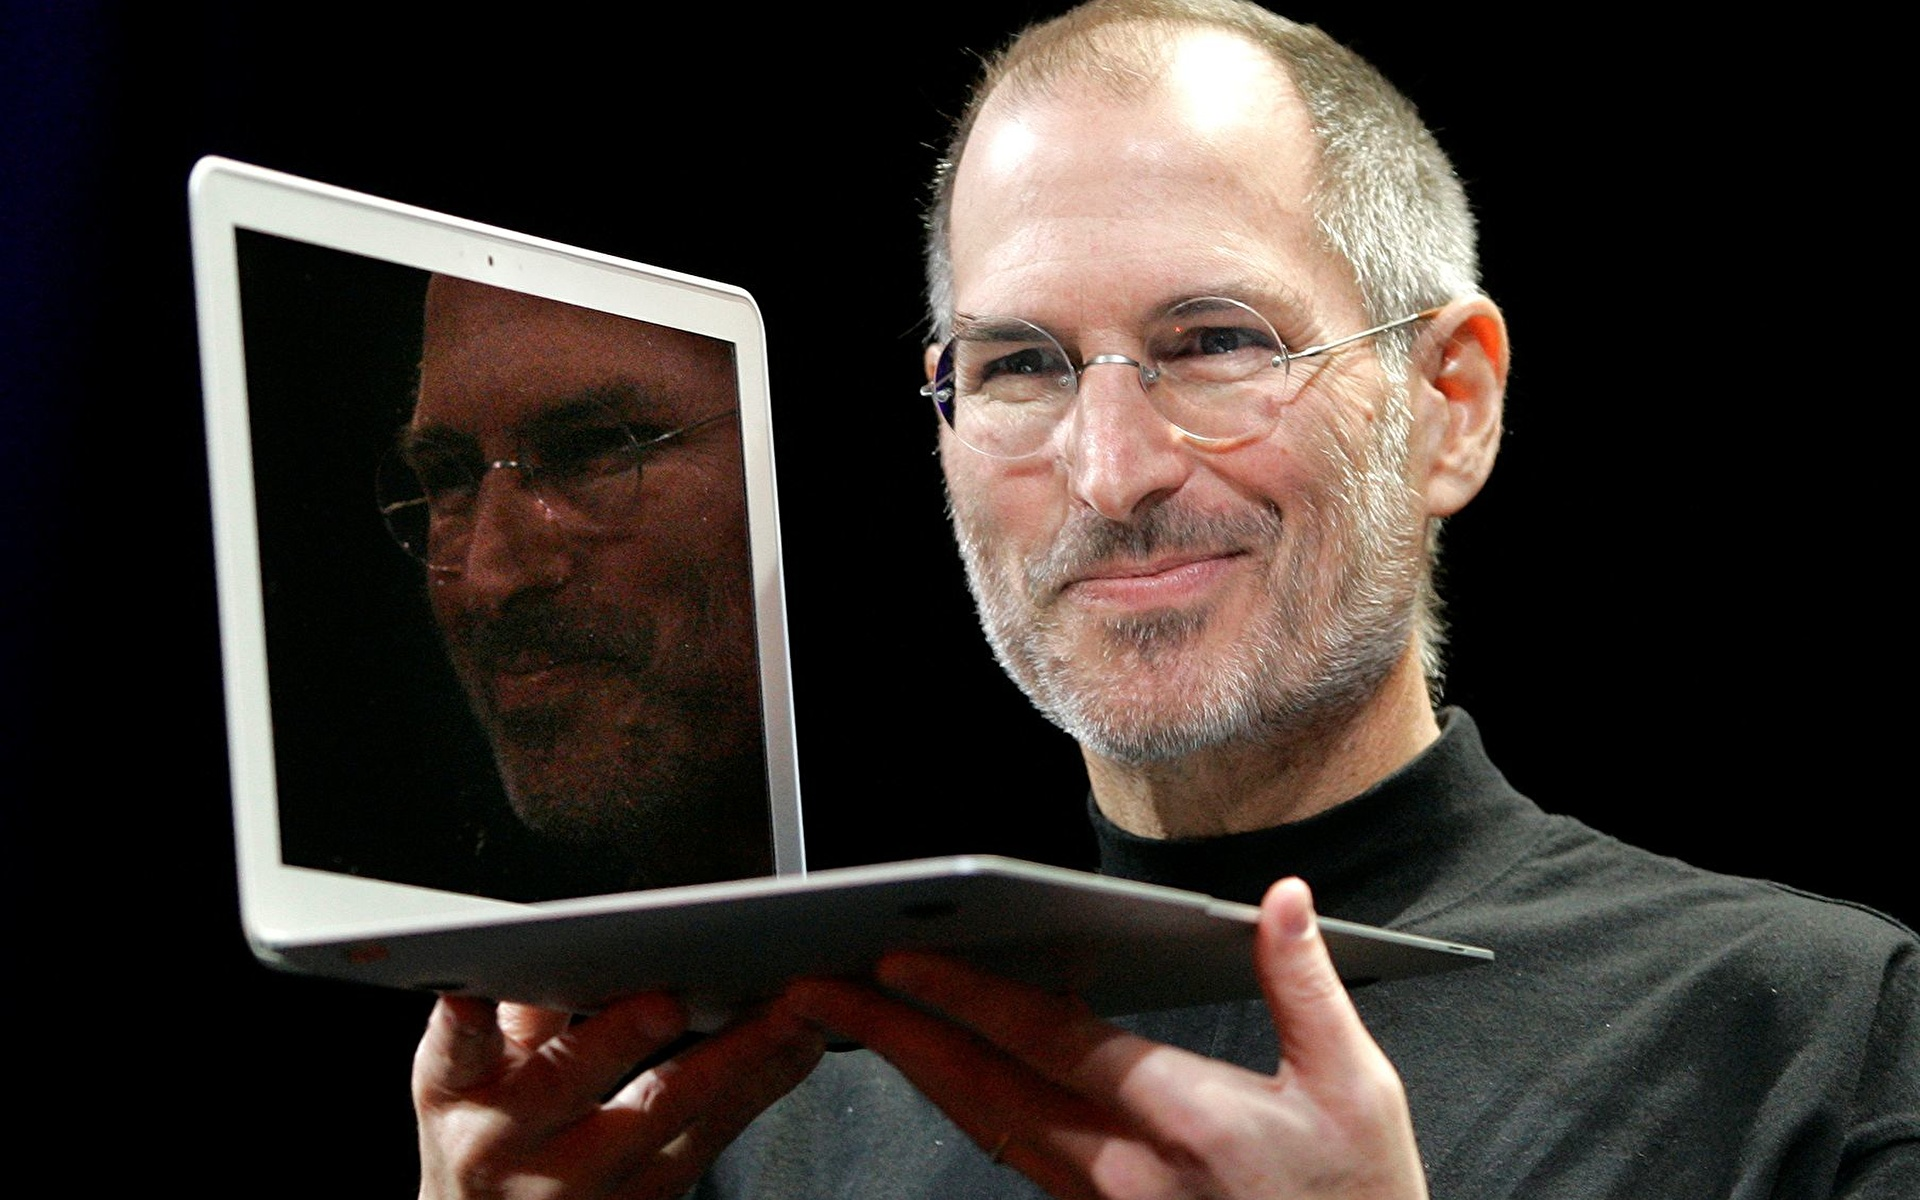 steve jobs an anomaly in business Steve jobs has always been considered an anomaly in management, his leadership style (vertical, top-down approach and often harsh) was something to admire or to criticize [ver11] in this project team c will research the pros and cons of this leadership style and how his unconventional leadership style resulted in a successful company.